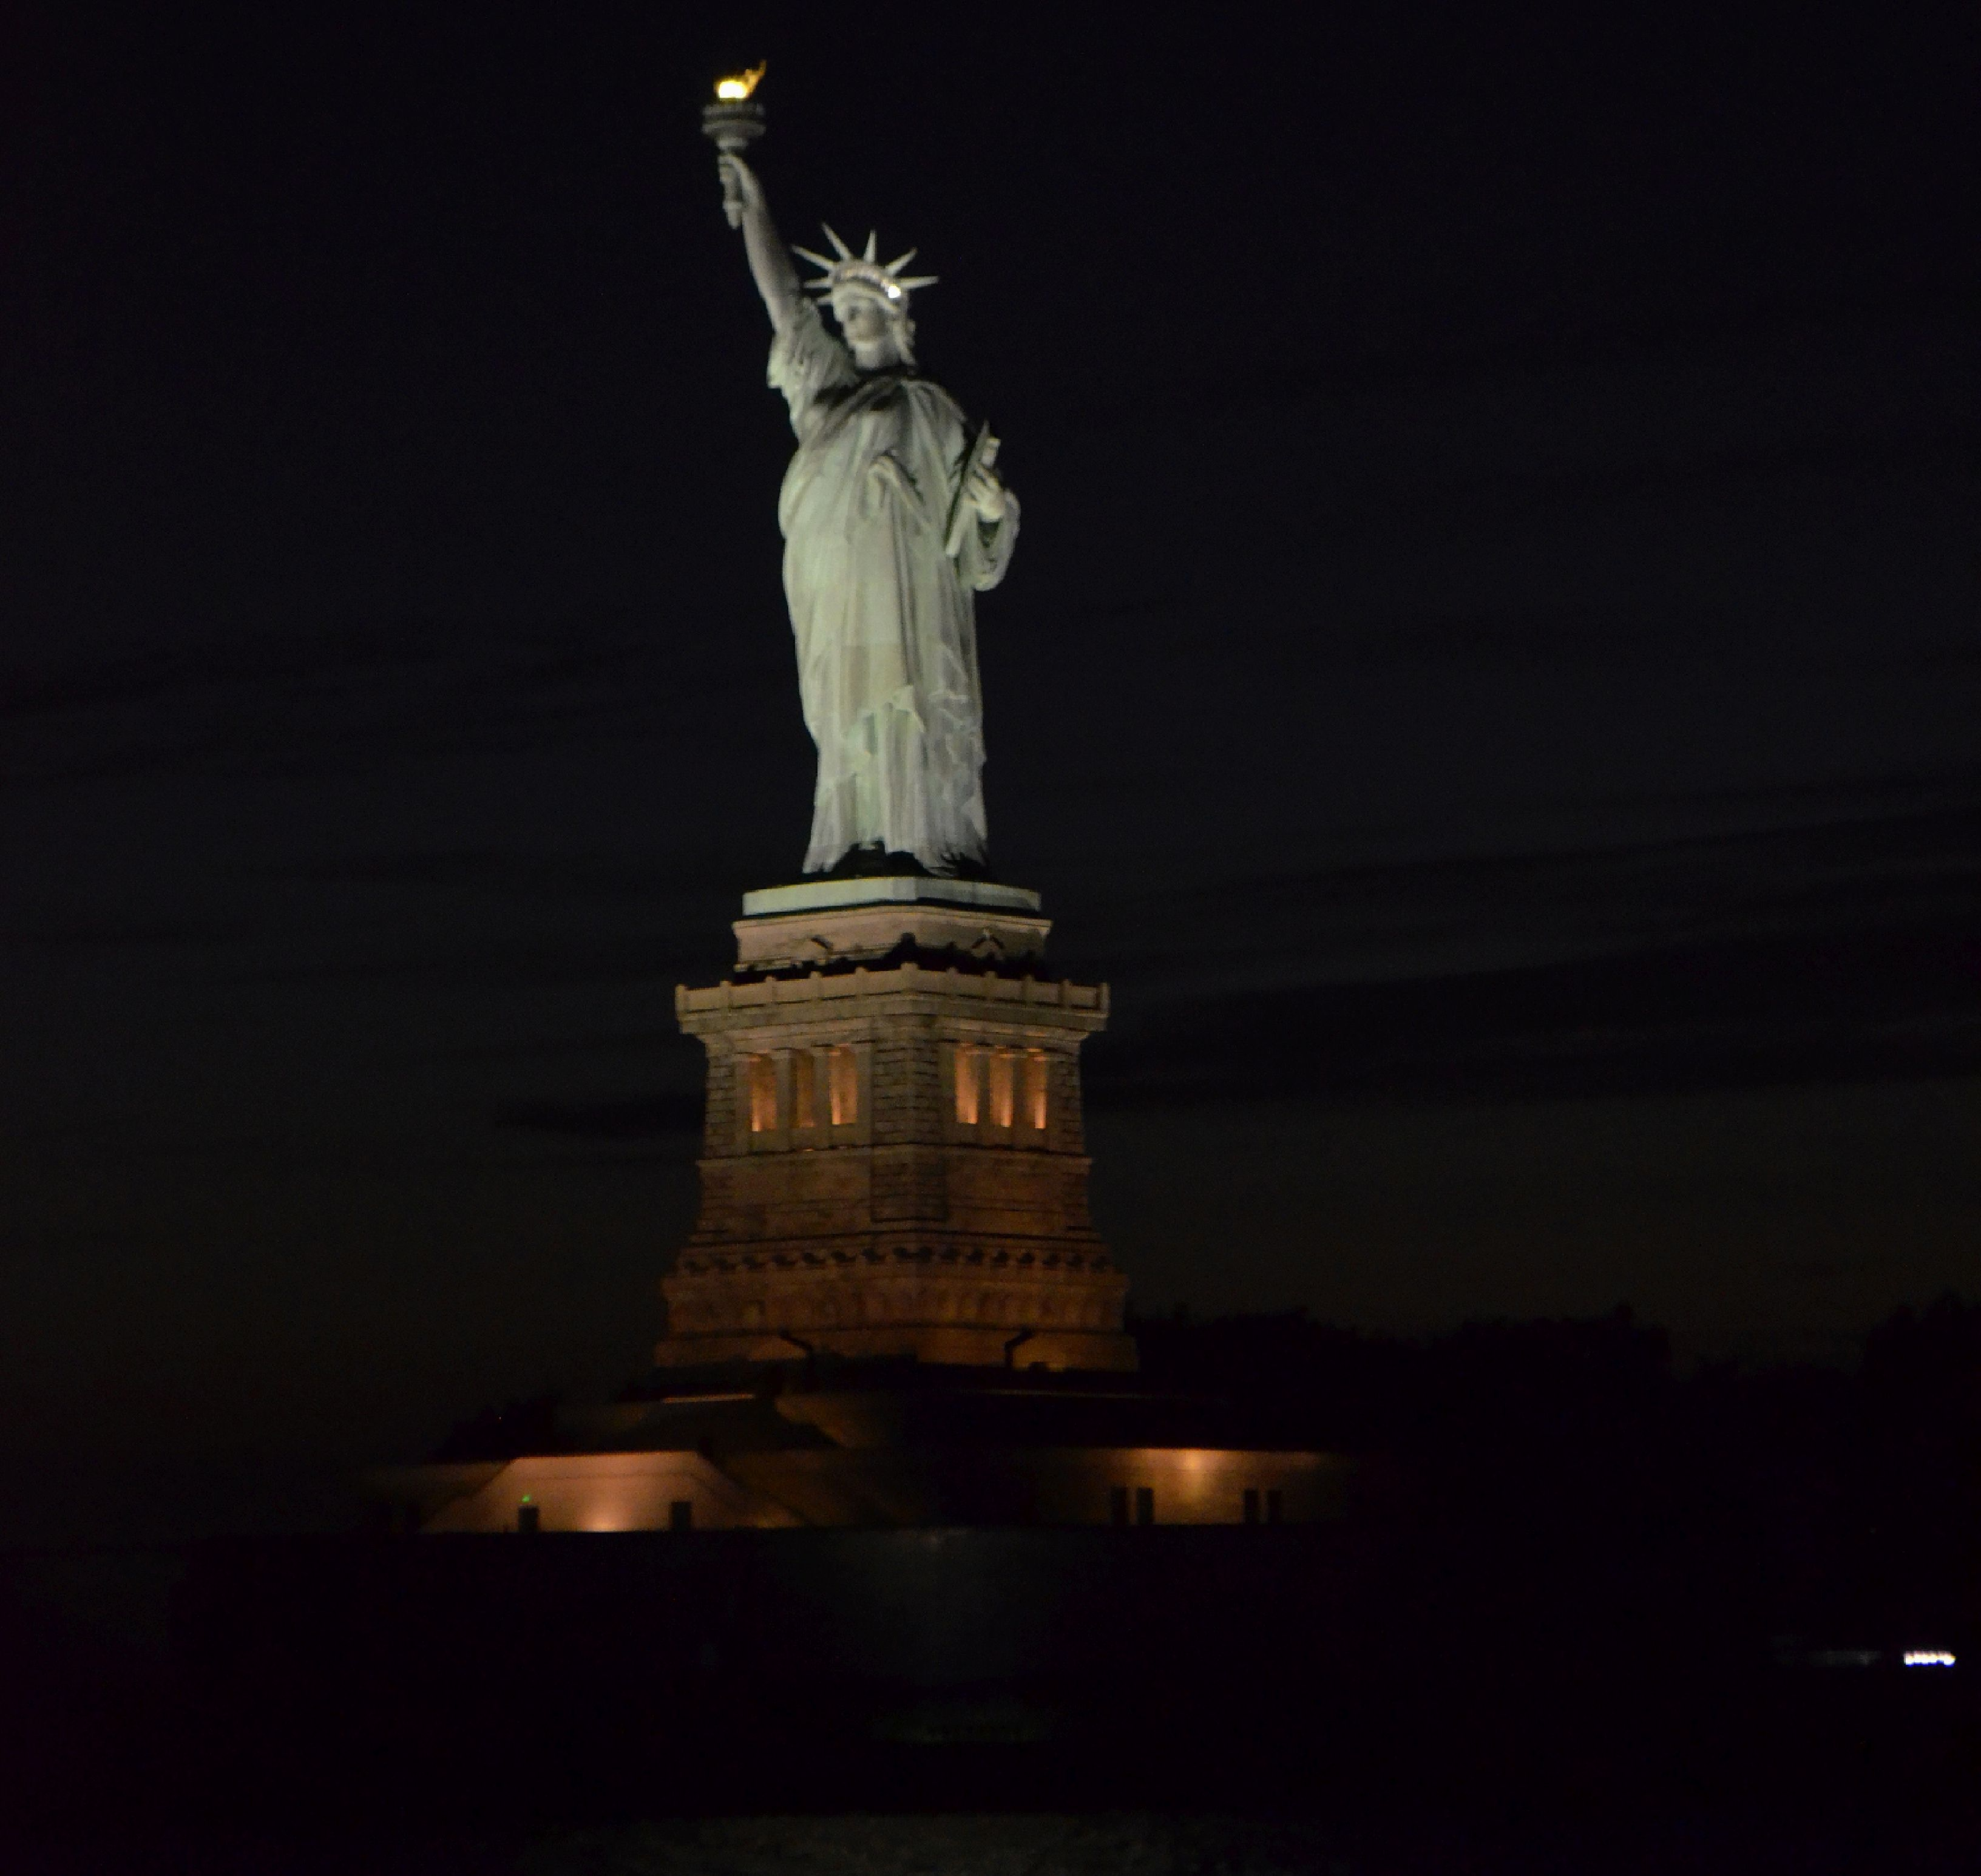 statue of liberty at night new york city, sehenswürdigkeiten manhattan, top 10 sehenswürdigkeiten, travelguide new york, travelblog, travel, lifestyleblog, blogger © ceyourgoals 2016